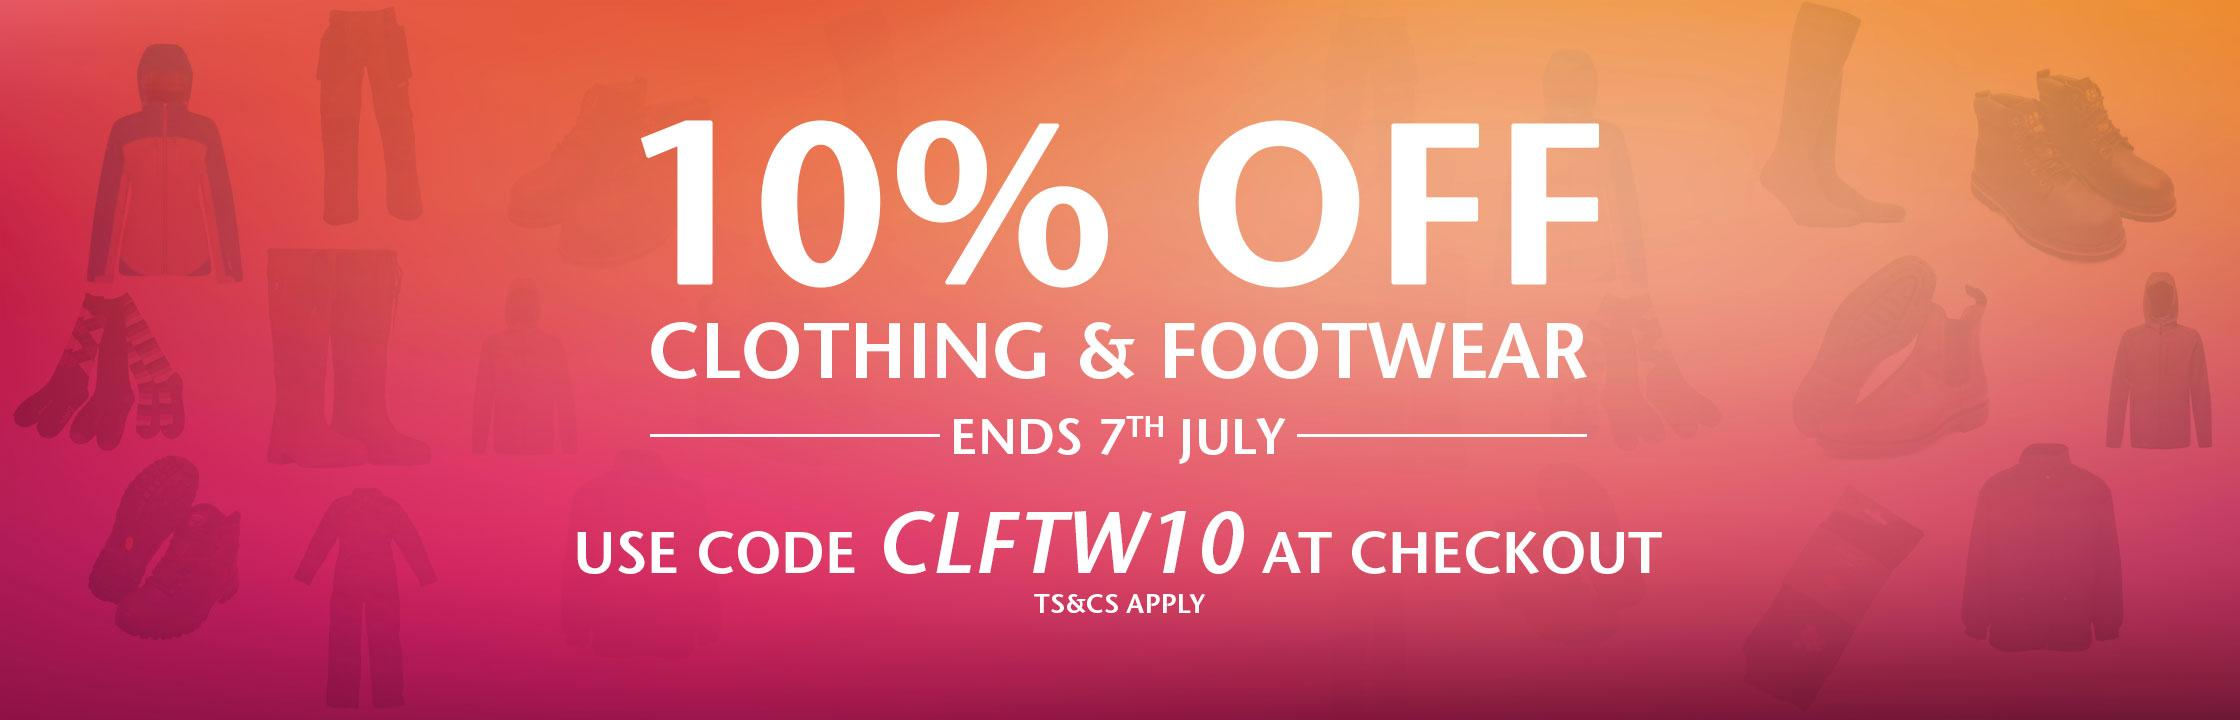 10% OFF Clothing & Footwear banner image